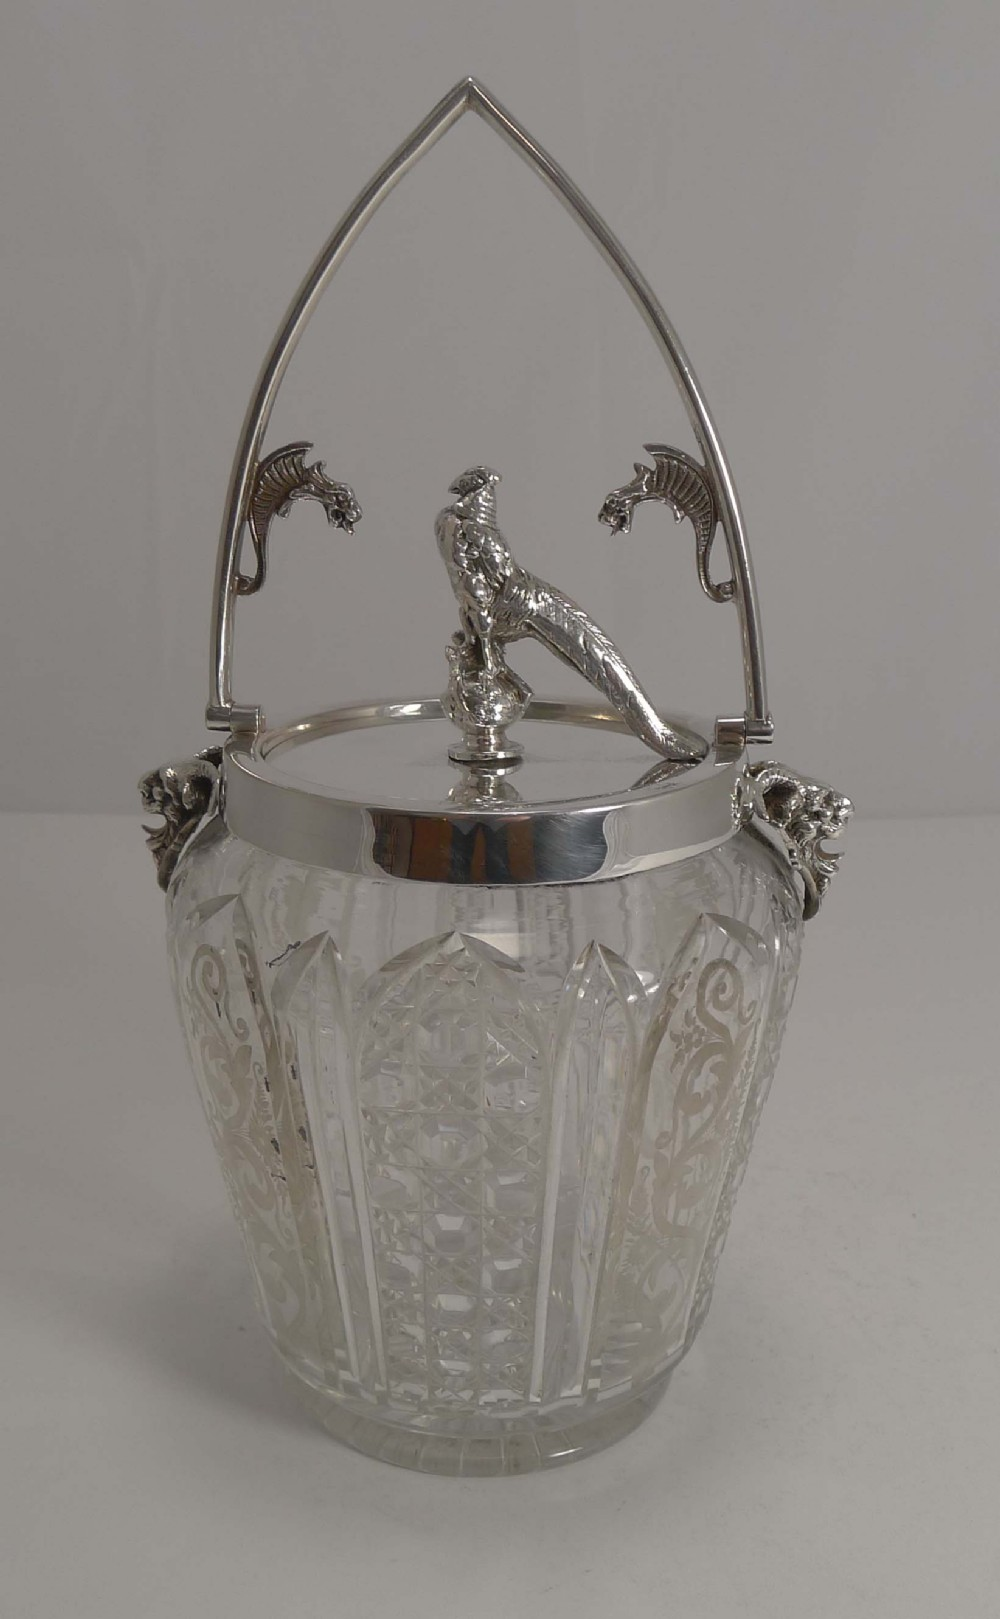 magnificent and unusual antique cut crystal and silver plated biscuit box c1880